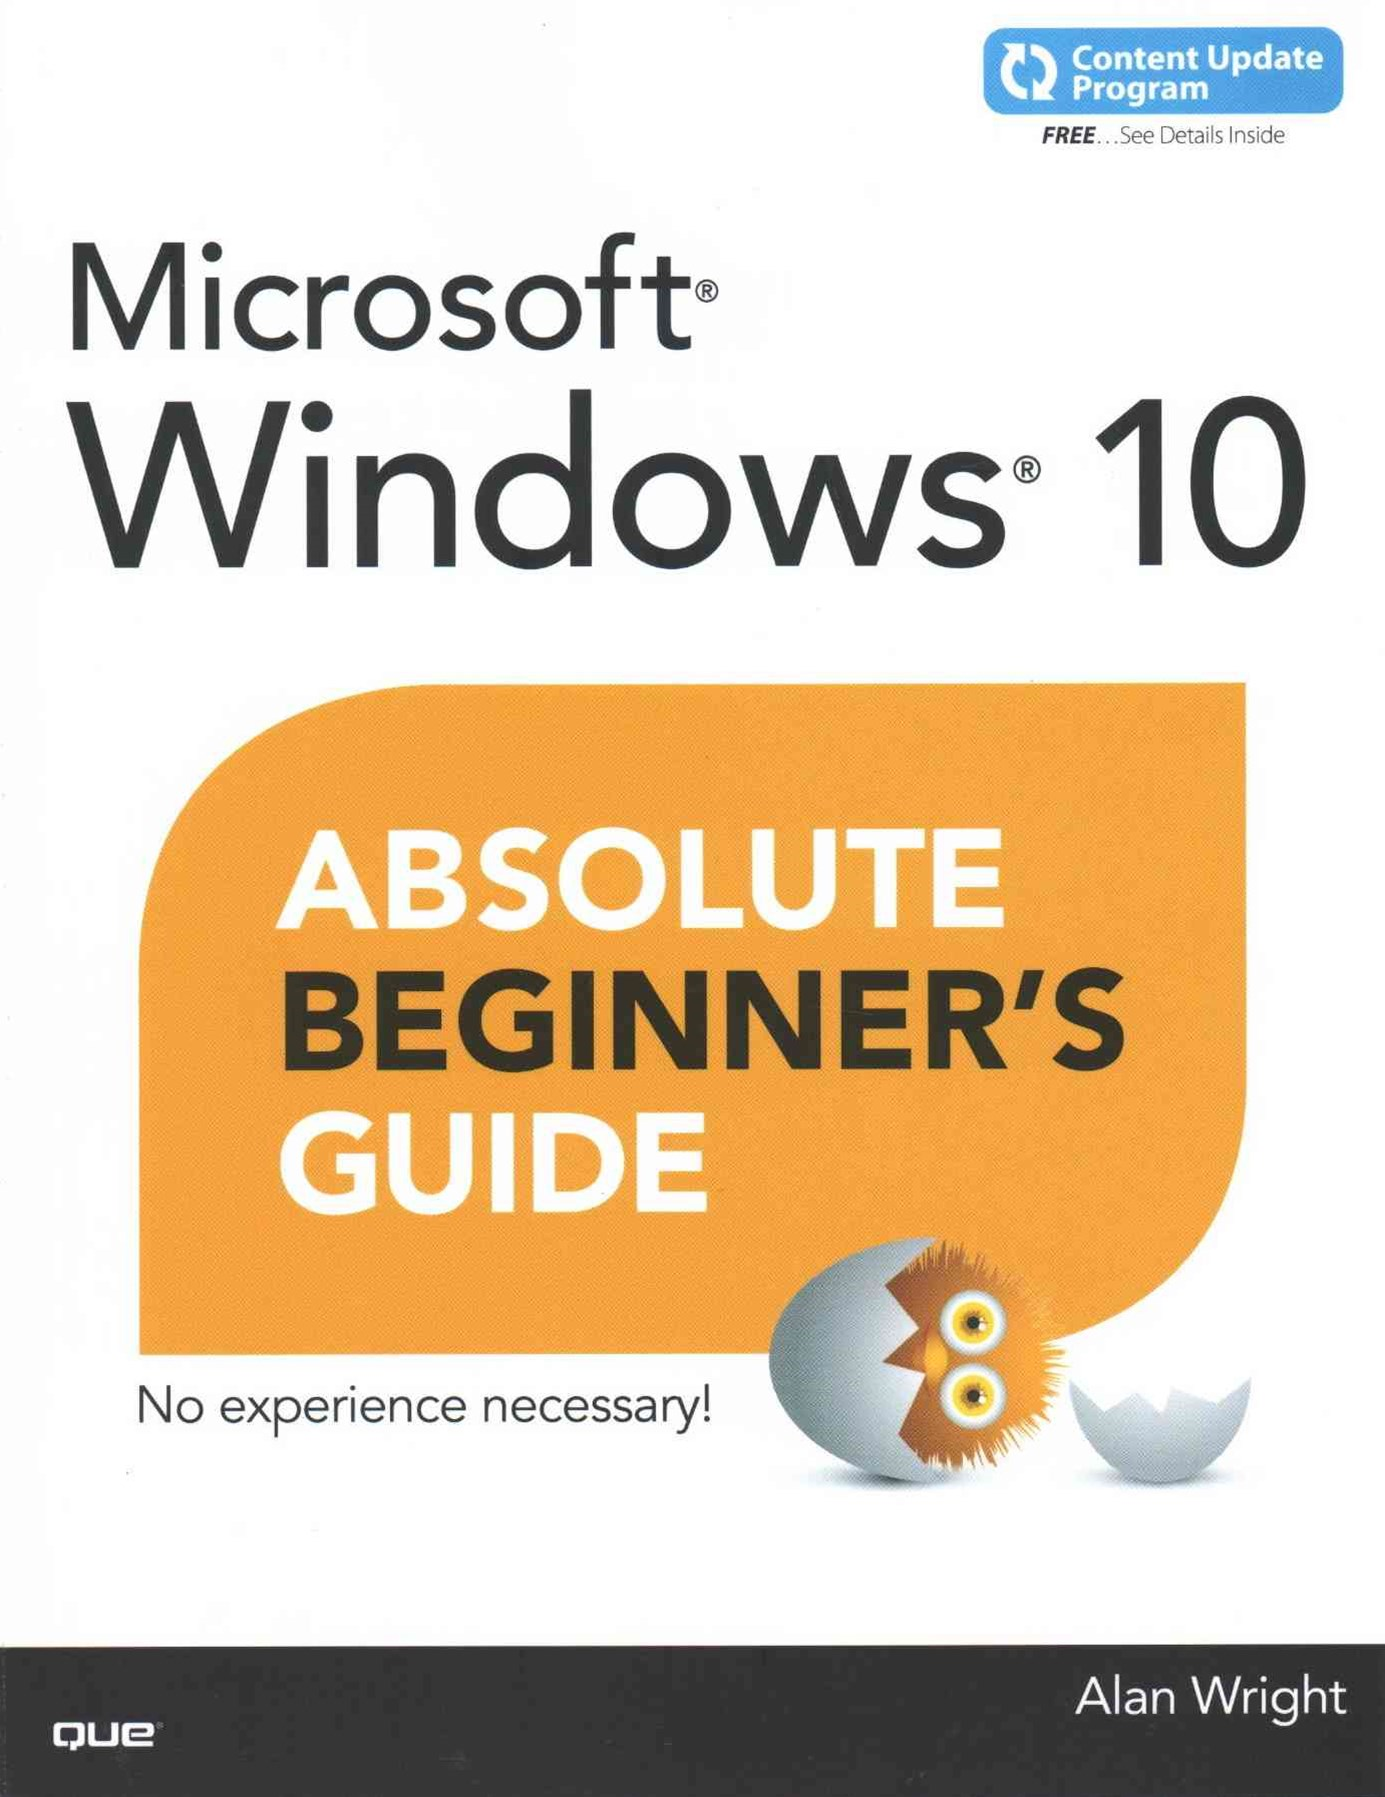 Windows 10 Absolute Beginner's Guide